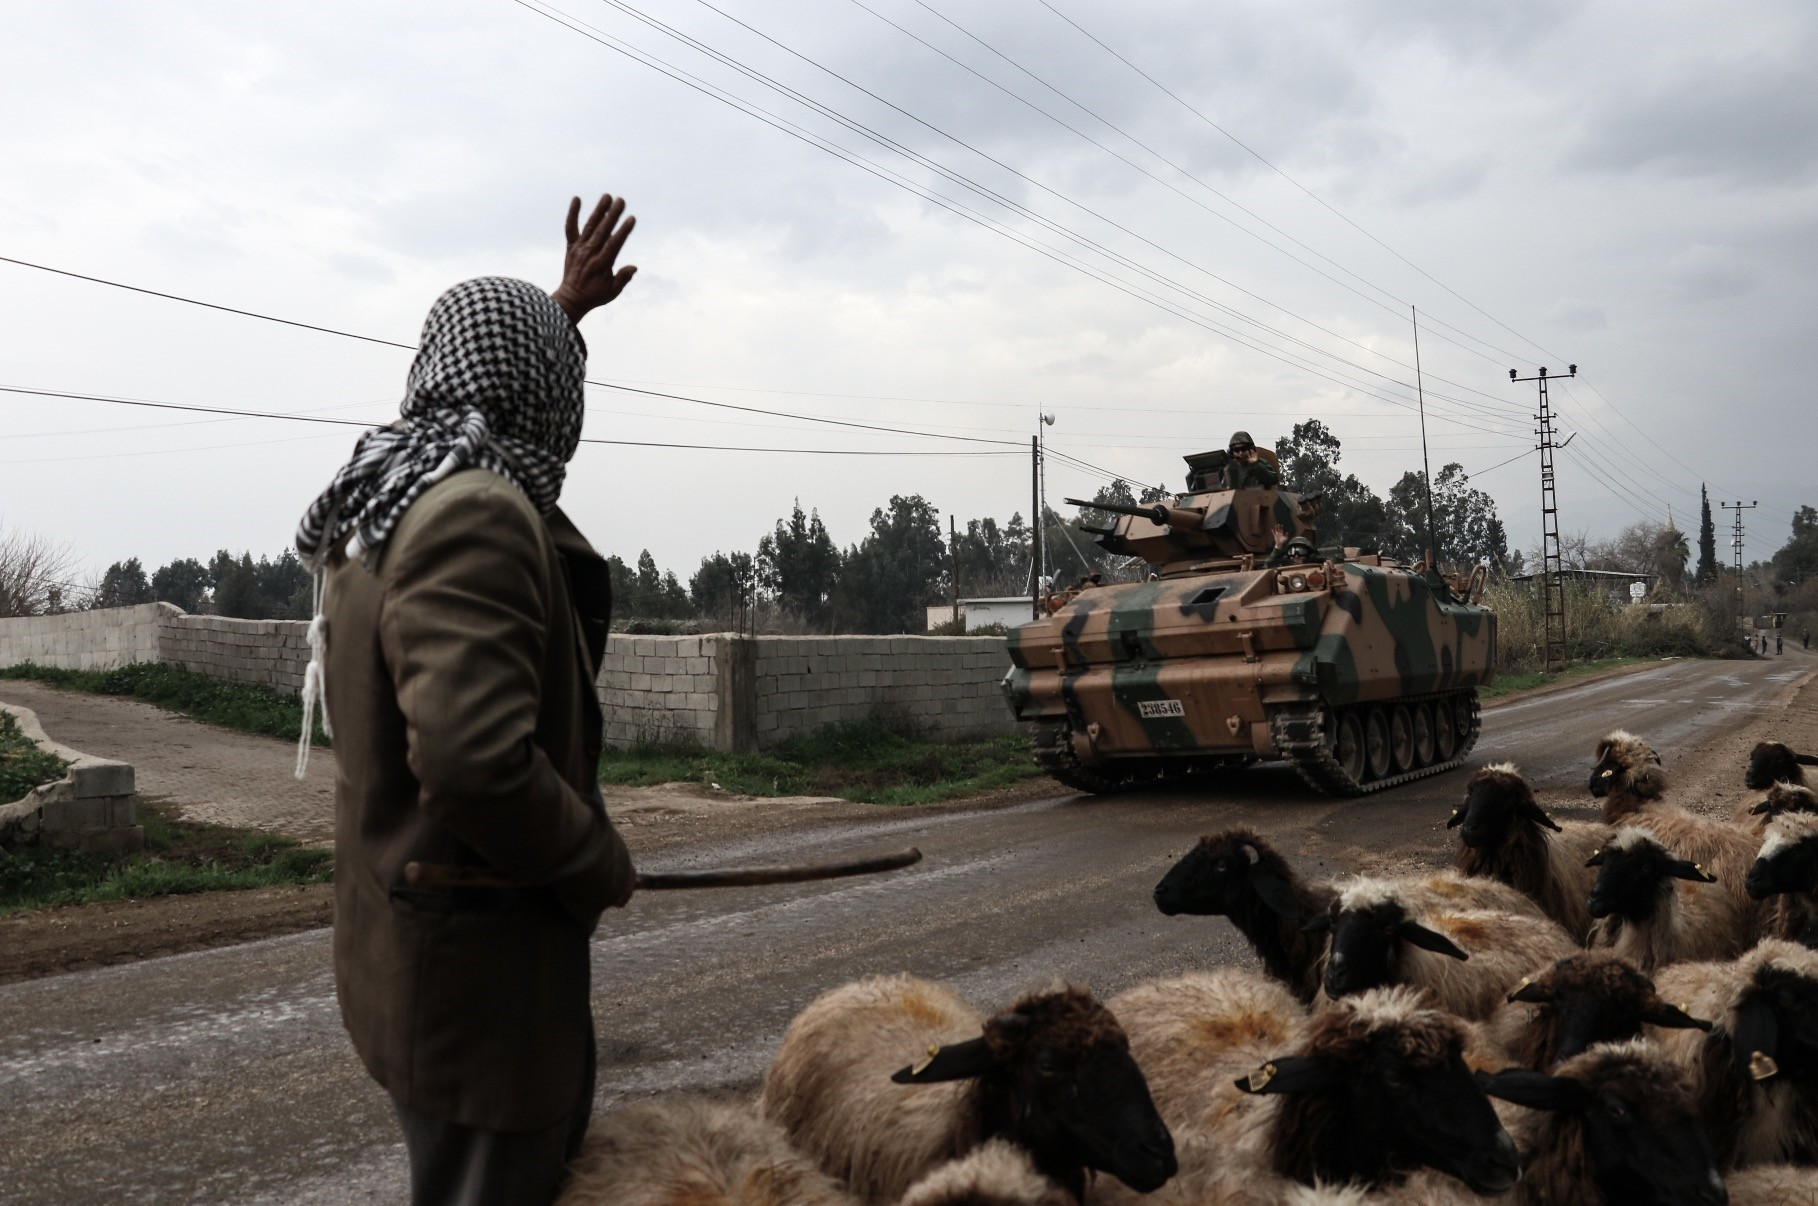 A Syrian shepherd waves to a Turkish soldier as he passes by after Afrin was liberated from YPG terrorists as part of Operation Olive Branch, March 21, Syria.